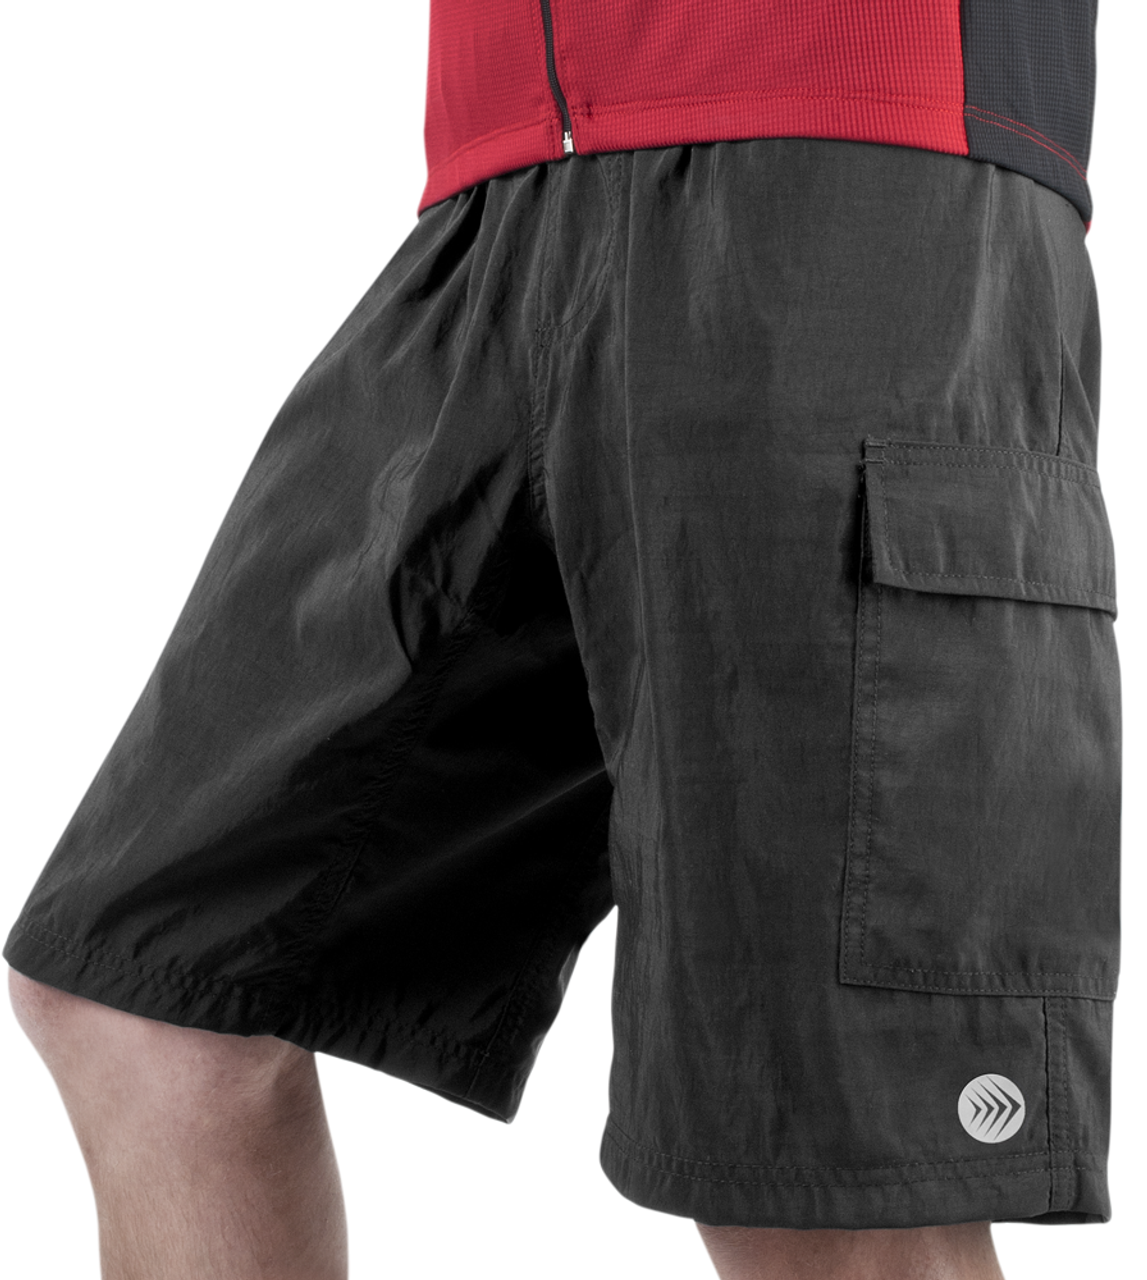 Two Shorts in One Men/'s Commuter Urban Casual Cycling Bike Shorts with Padded Underliner